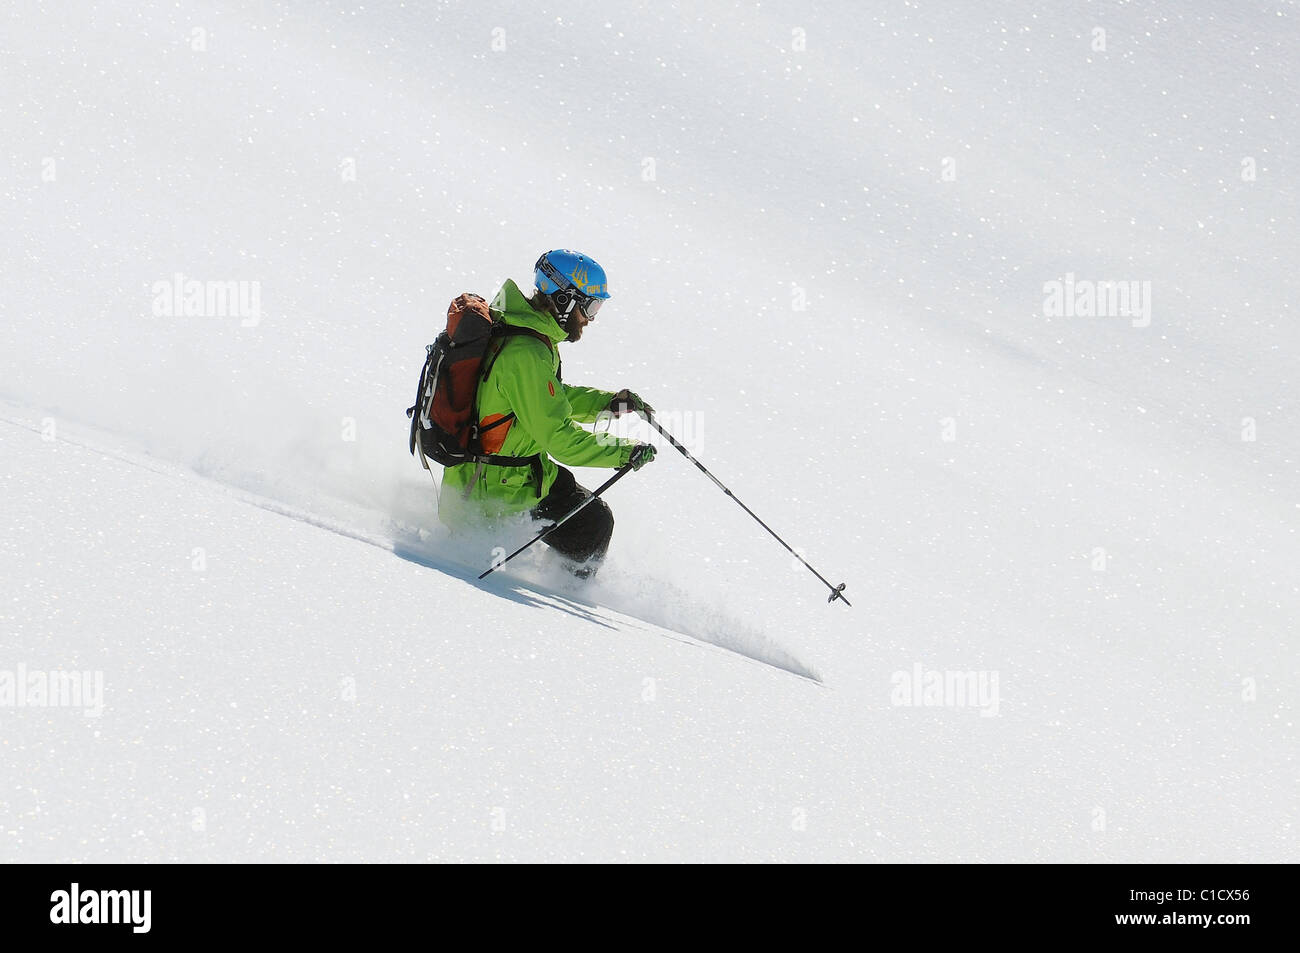 A telemark skier off piste in deep powder snow in the French ski resort of Courchevel. - Stock Image